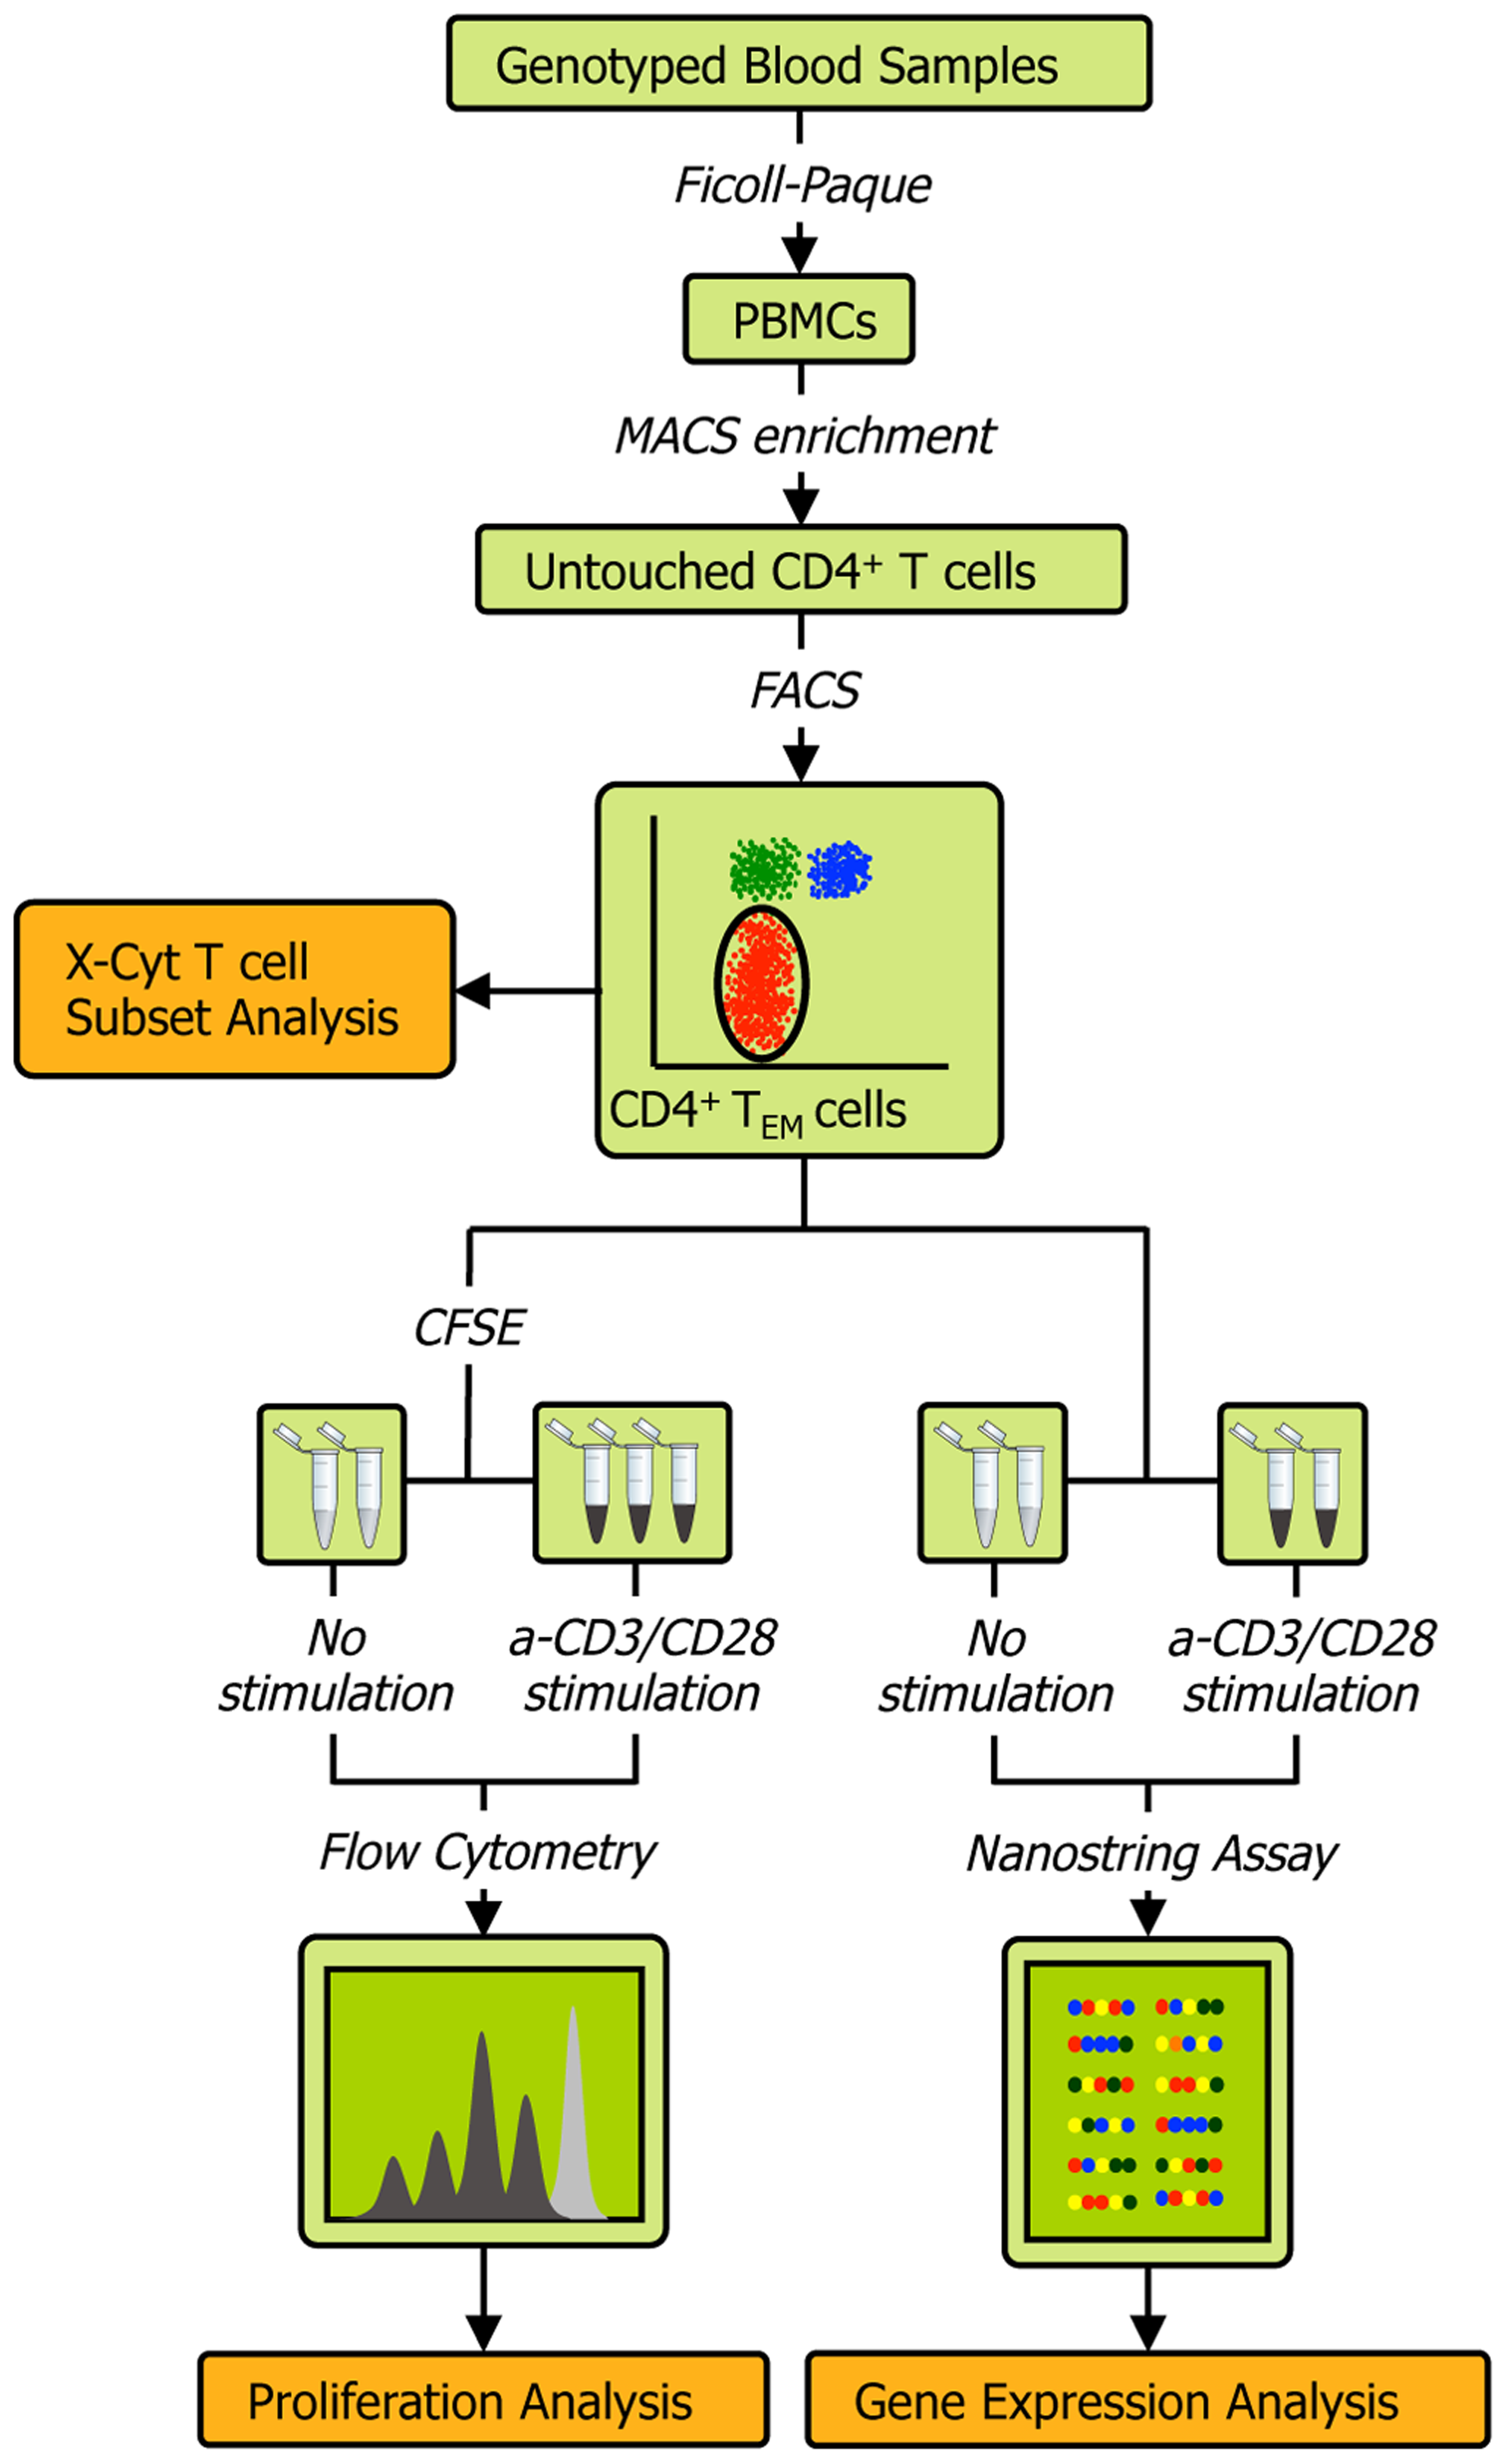 Schematic of the experimental workflow.